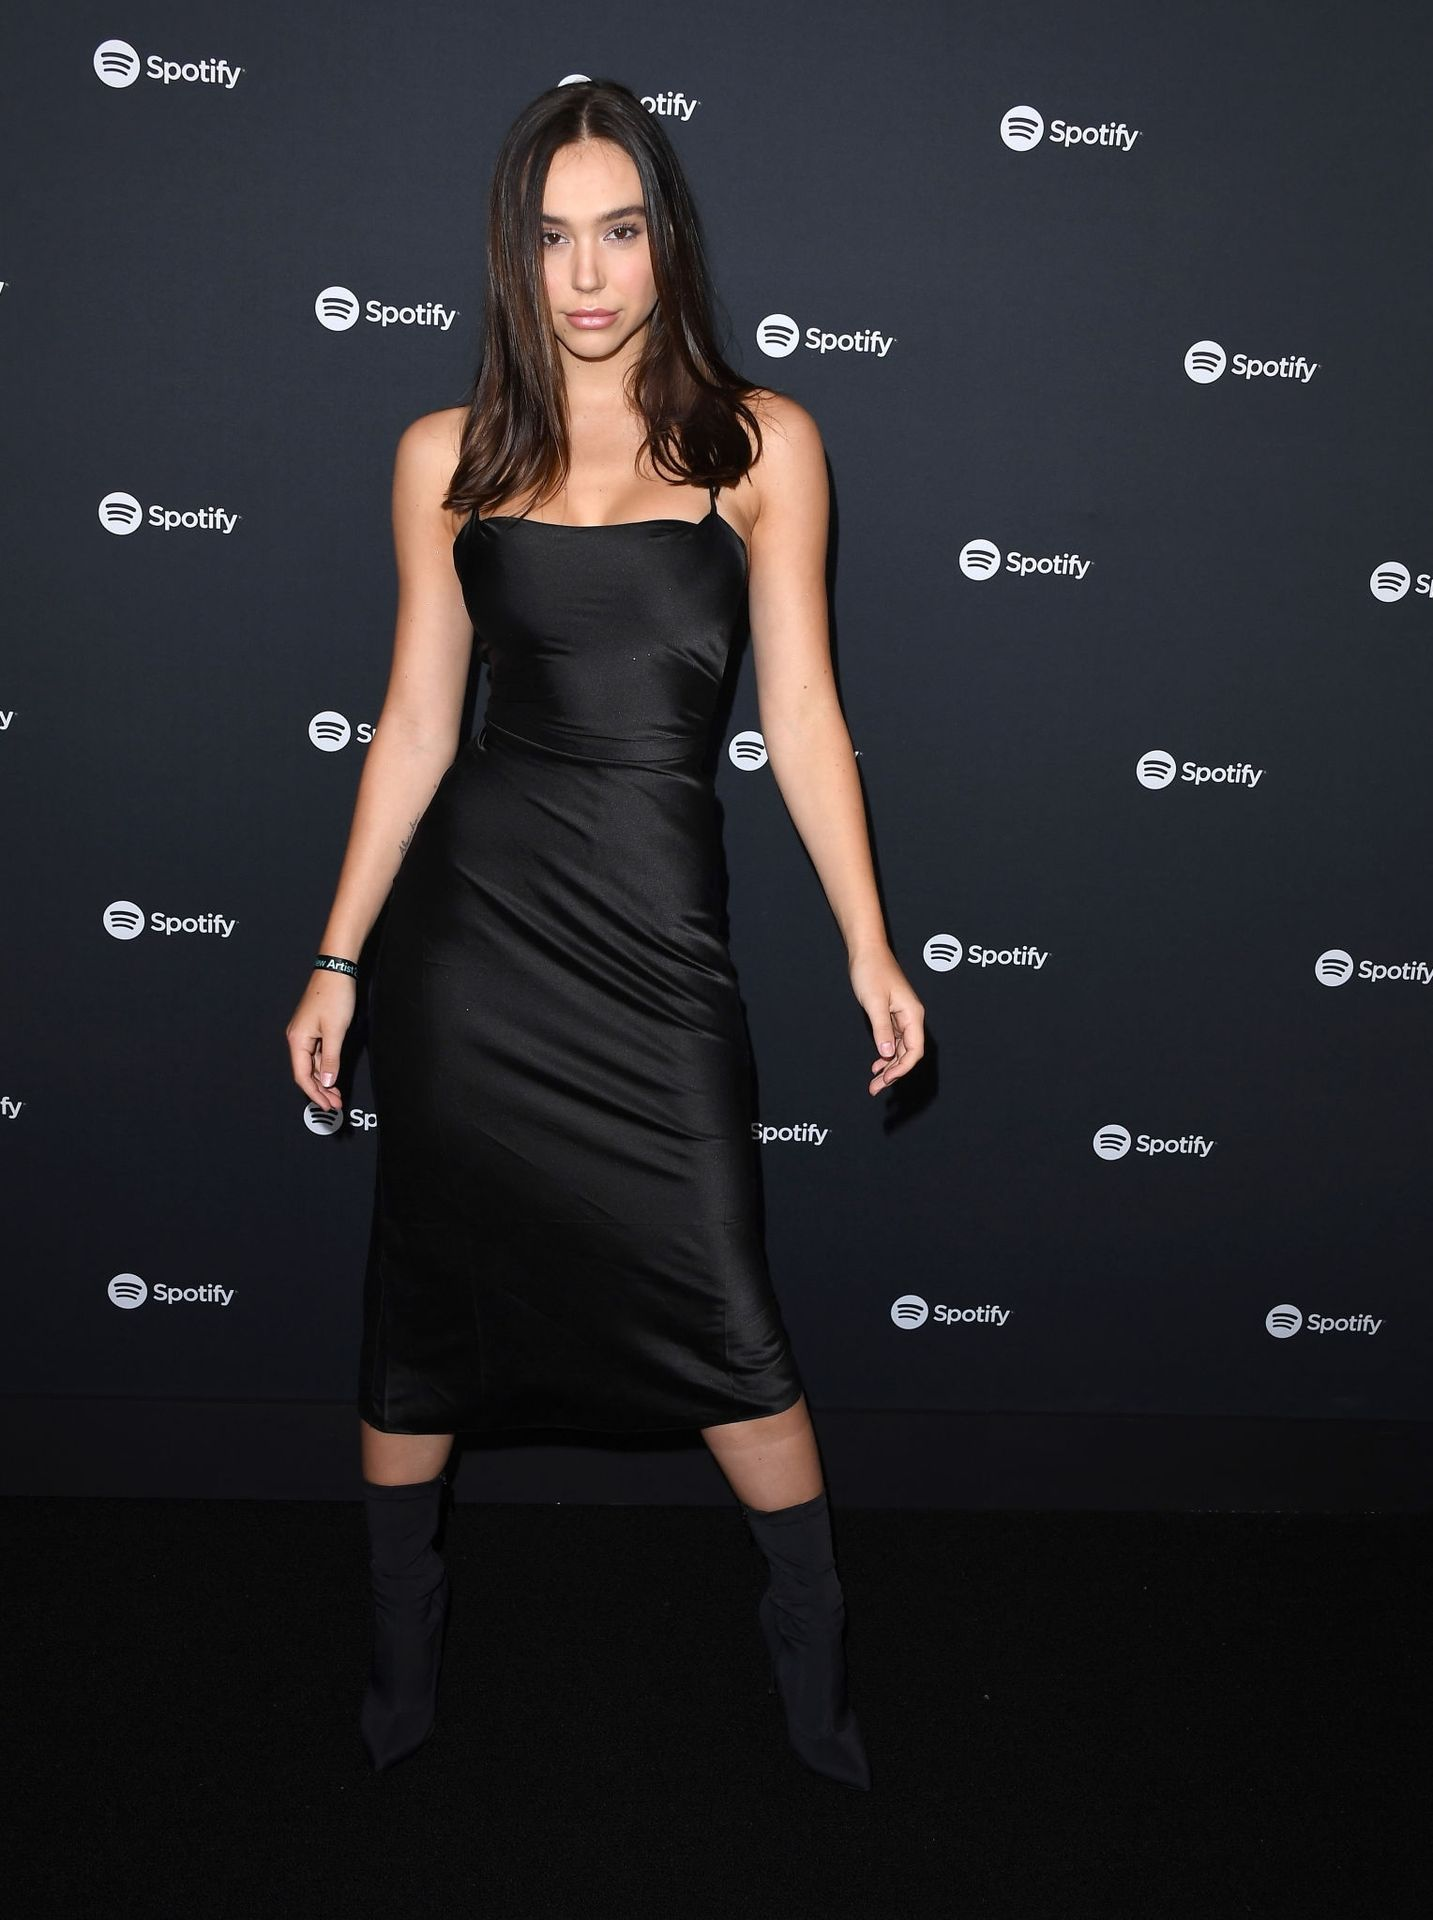 Alexis Ren Shows Off Her Tits At The Spotify Best New Artist Party 0005